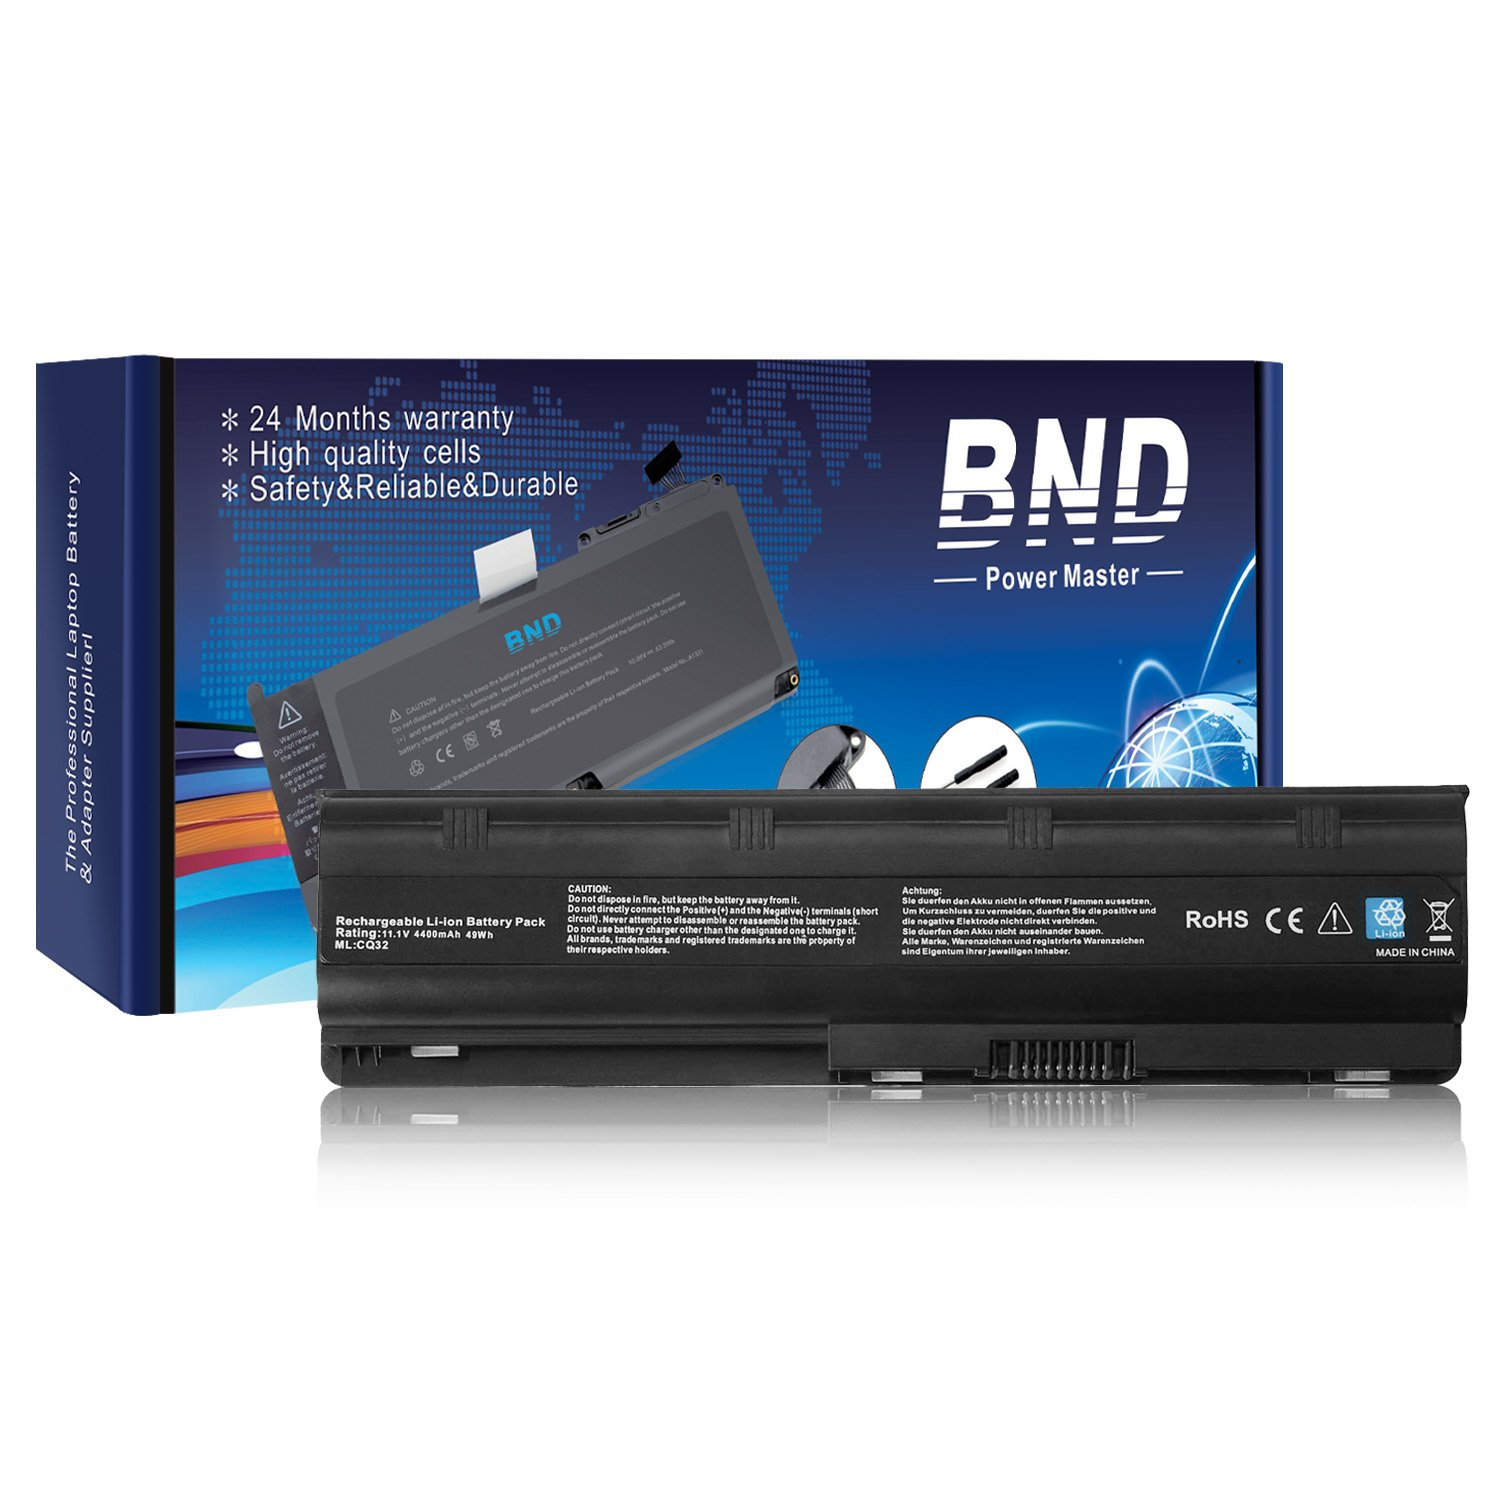 Amazon.com: BND Laptop Battery for HP G62 G32 G42 G42T G56 G72 G4 G6 G6T G7  Series- 12 Months Warranty [6-Cell 4400mAh/49Wh]: Computers & Accessories